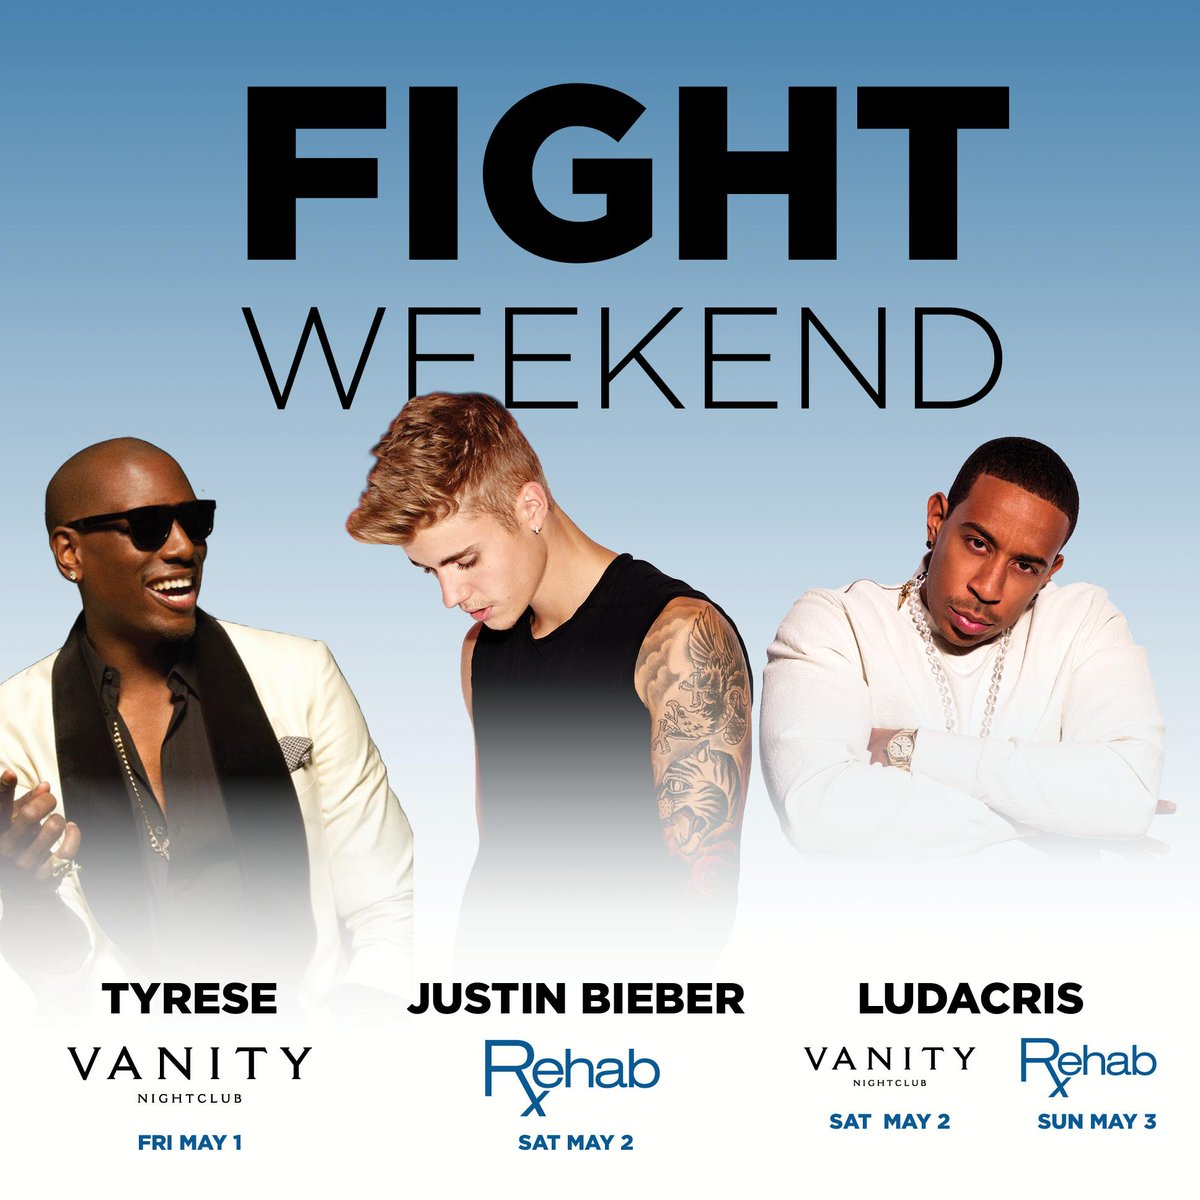 Who's ready for Fight Weekend? It's gonna be the biggest weekend of the year! http://t.co/dD7838sX59 http://t.co/1kQz0oLGfC